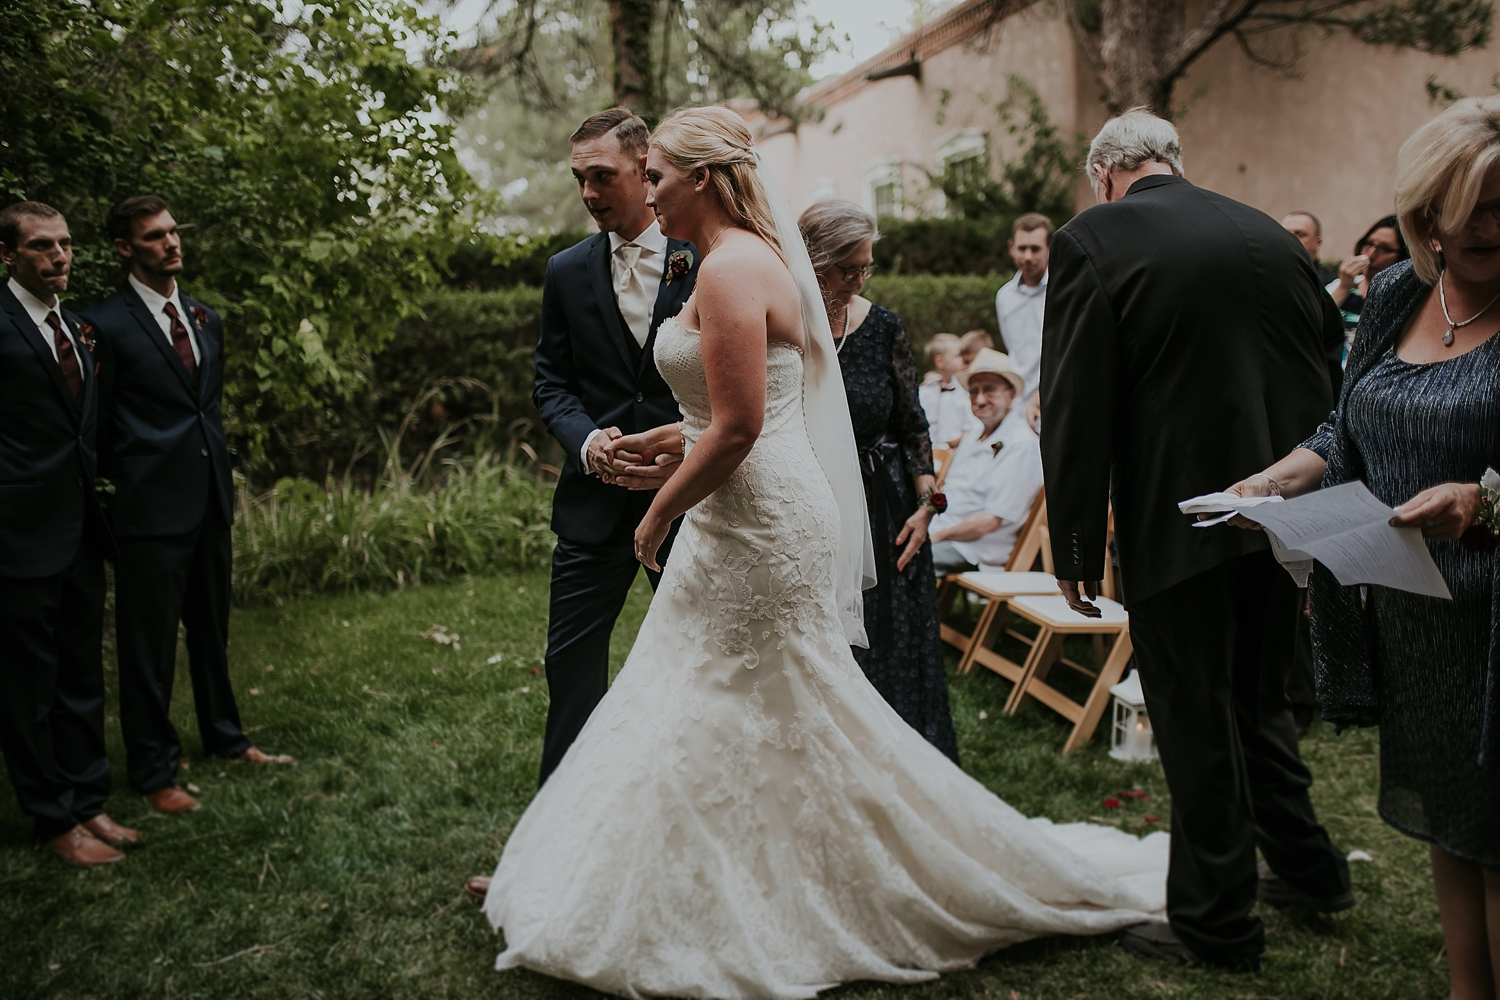 Alicia+lucia+photography+-+albuquerque+wedding+photographer+-+santa+fe+wedding+photography+-+new+mexico+wedding+photographer+-+los+poblanos+wedding+-+los+poblanos+fall+wedding_0047.jpg